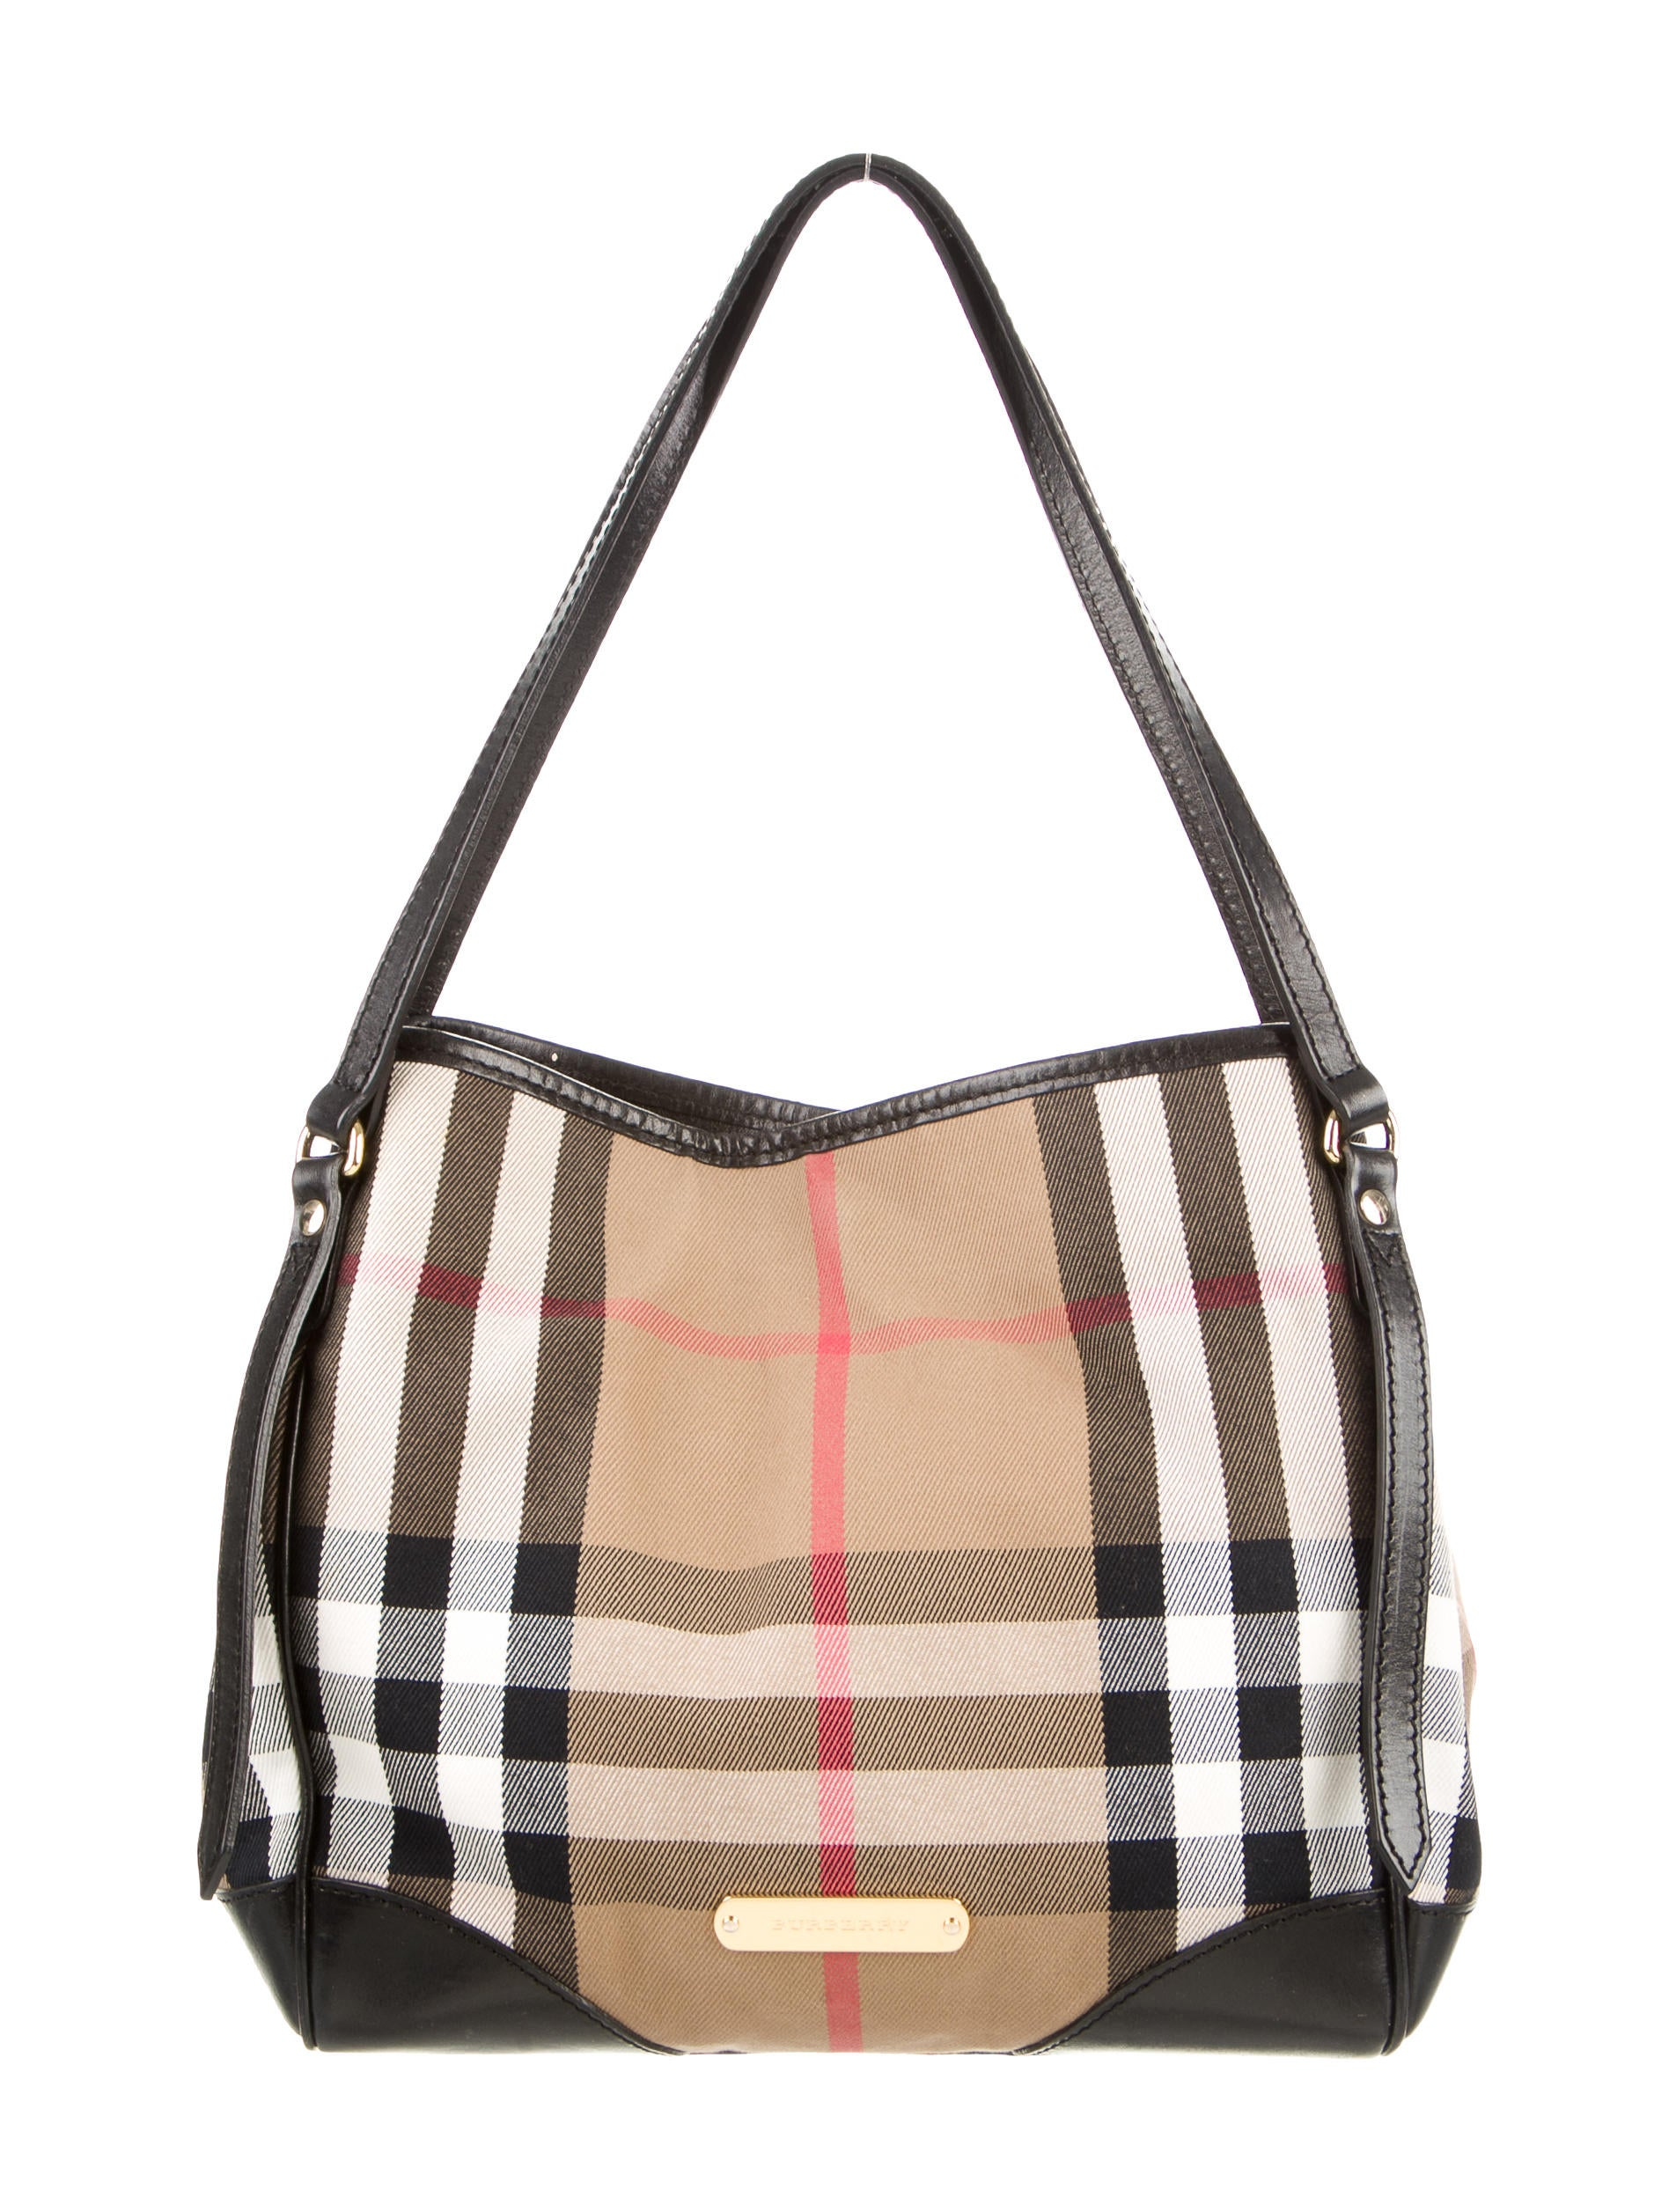 9fe469b991d2 Burberry Bridle House Check Small Canterbury Tote - Handbags ...